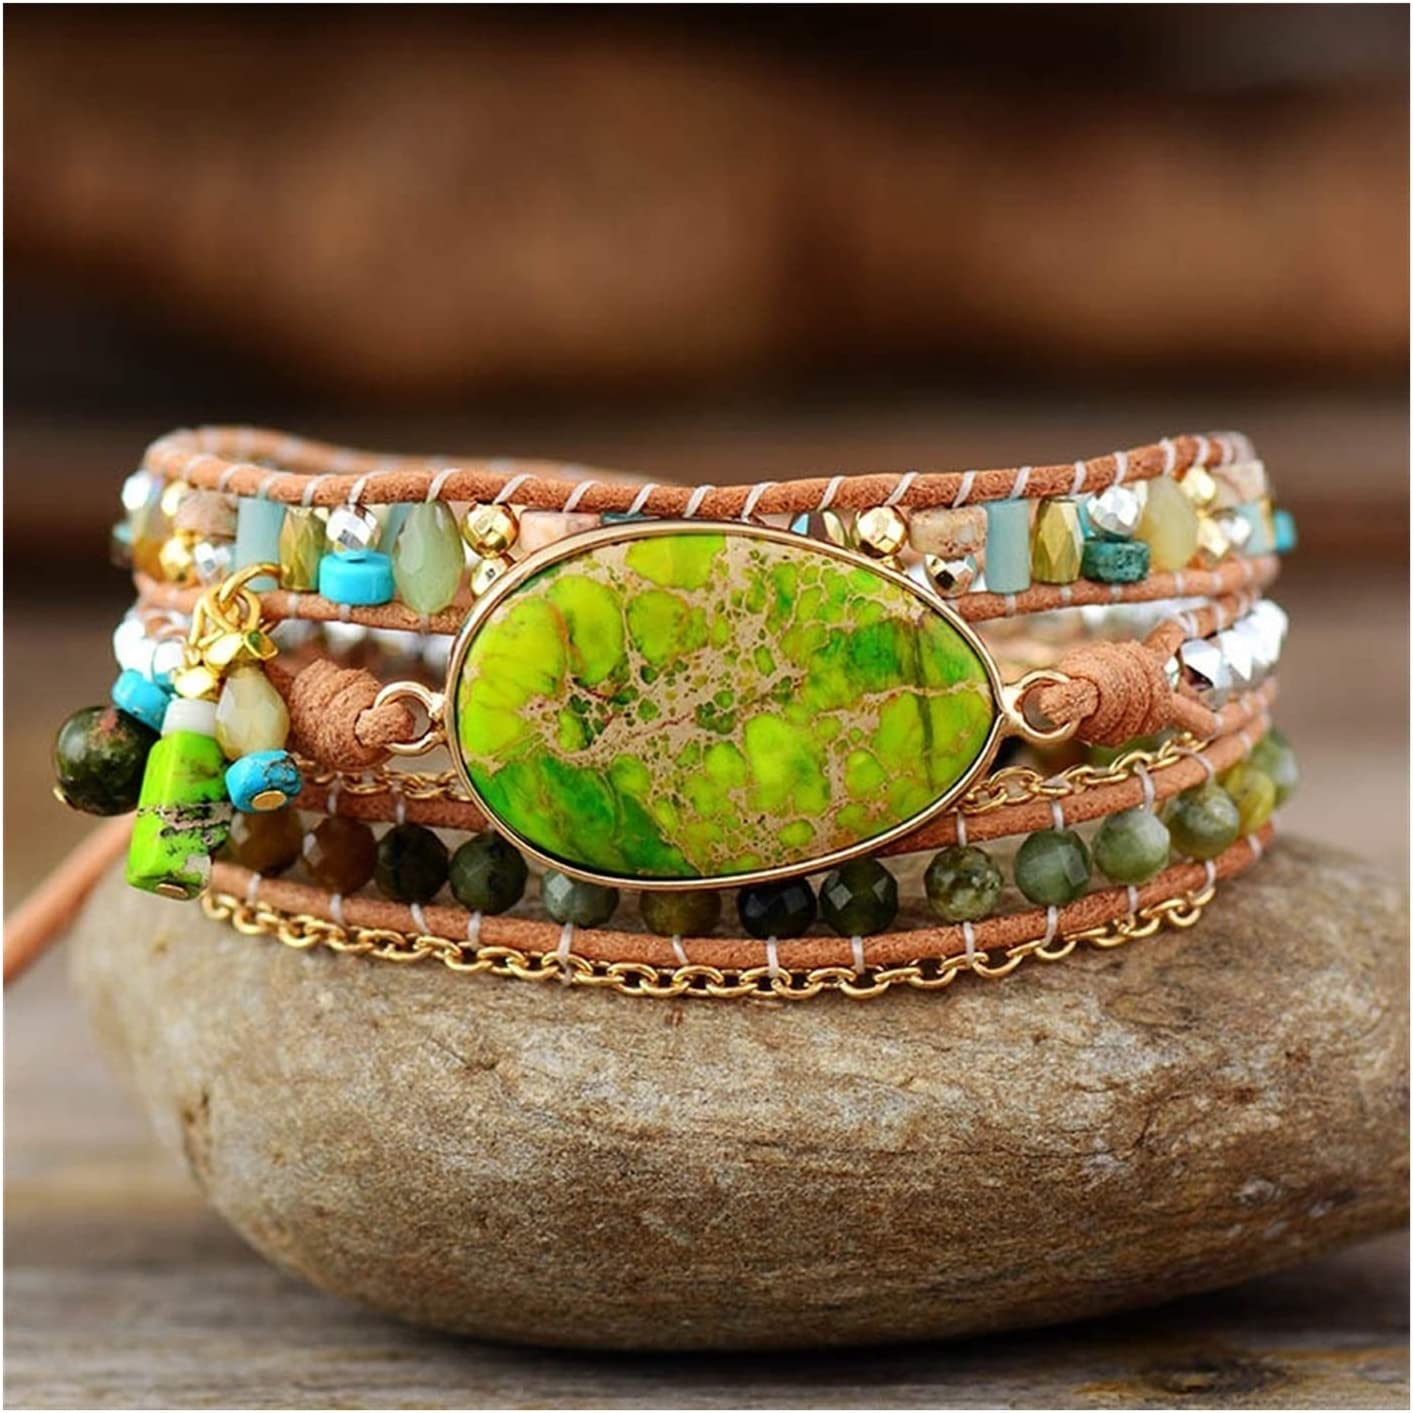 AOSUAI Multilayers Leather Wrap Challenge the lowest price of Japan ☆ Natural 5% OFF Bracelets Jaspers Stone